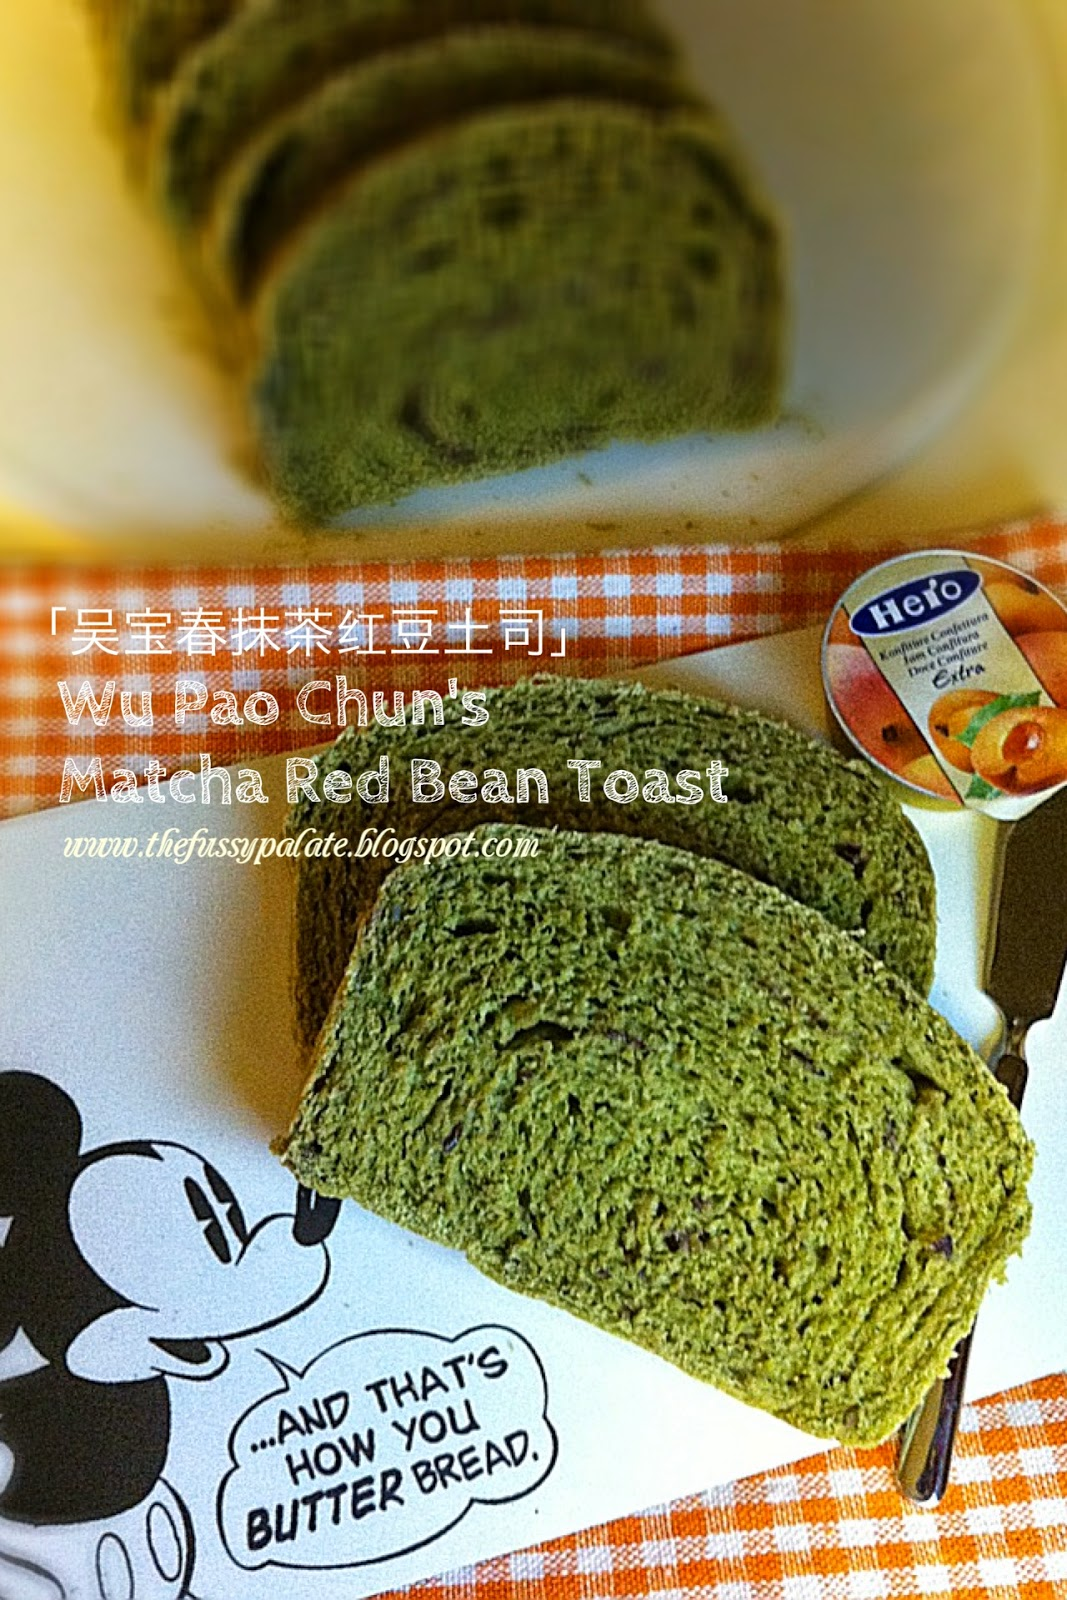 I Have A Colleague In Office Who Loves Baking And Cooking As Much Do Some 2 Weeks Back She Asked If Knew Anything About Wu Pao Chun S Champion Toast